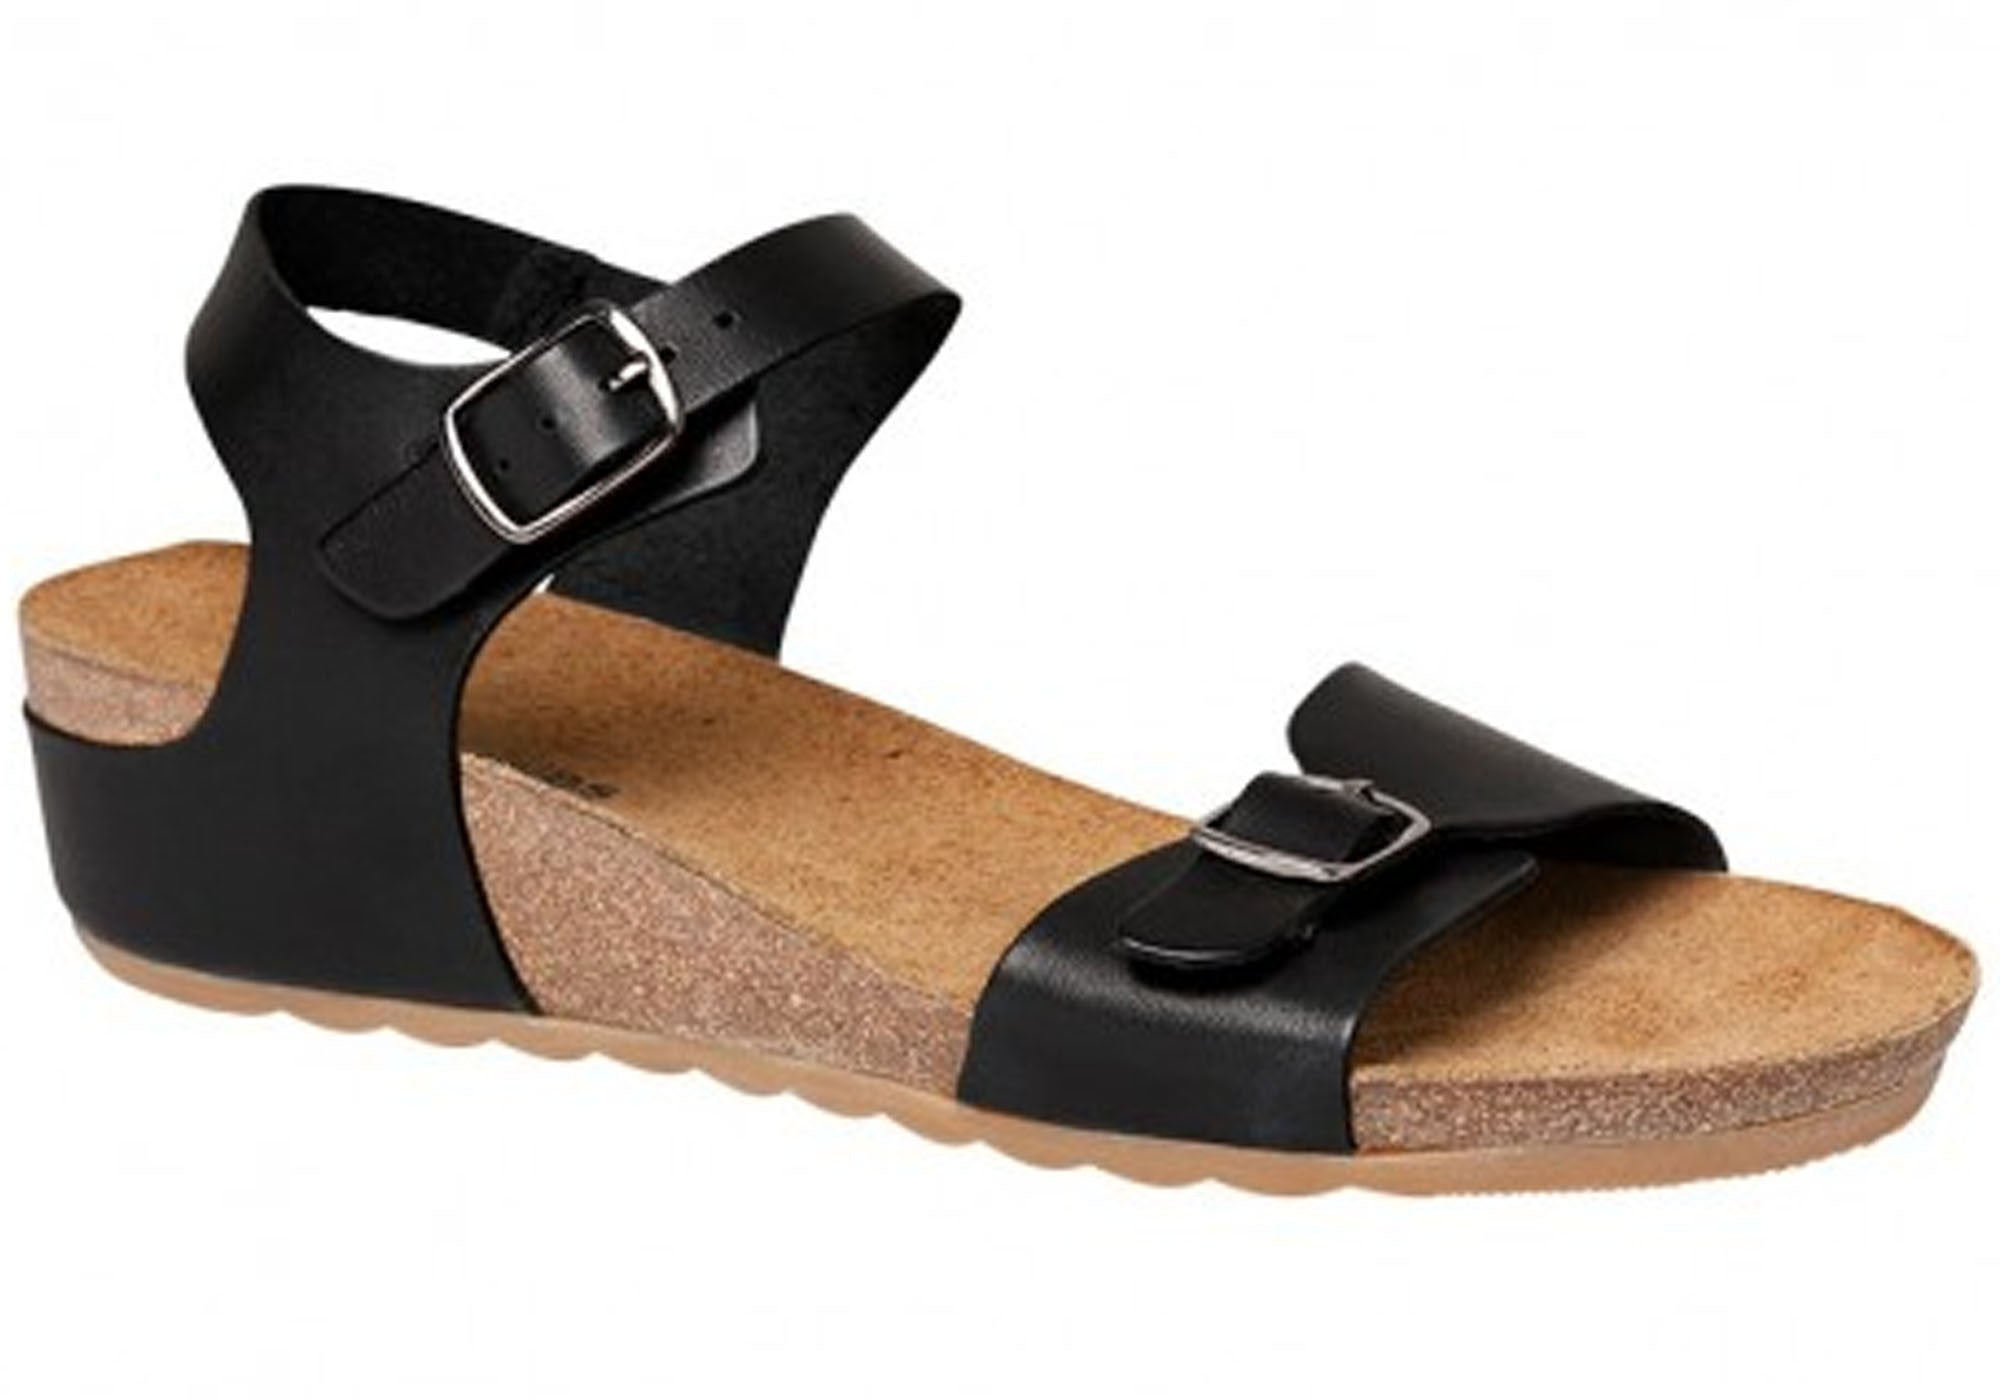 ... Tease Soothe Womens Leather Comfort Sandals. Black Leather ...